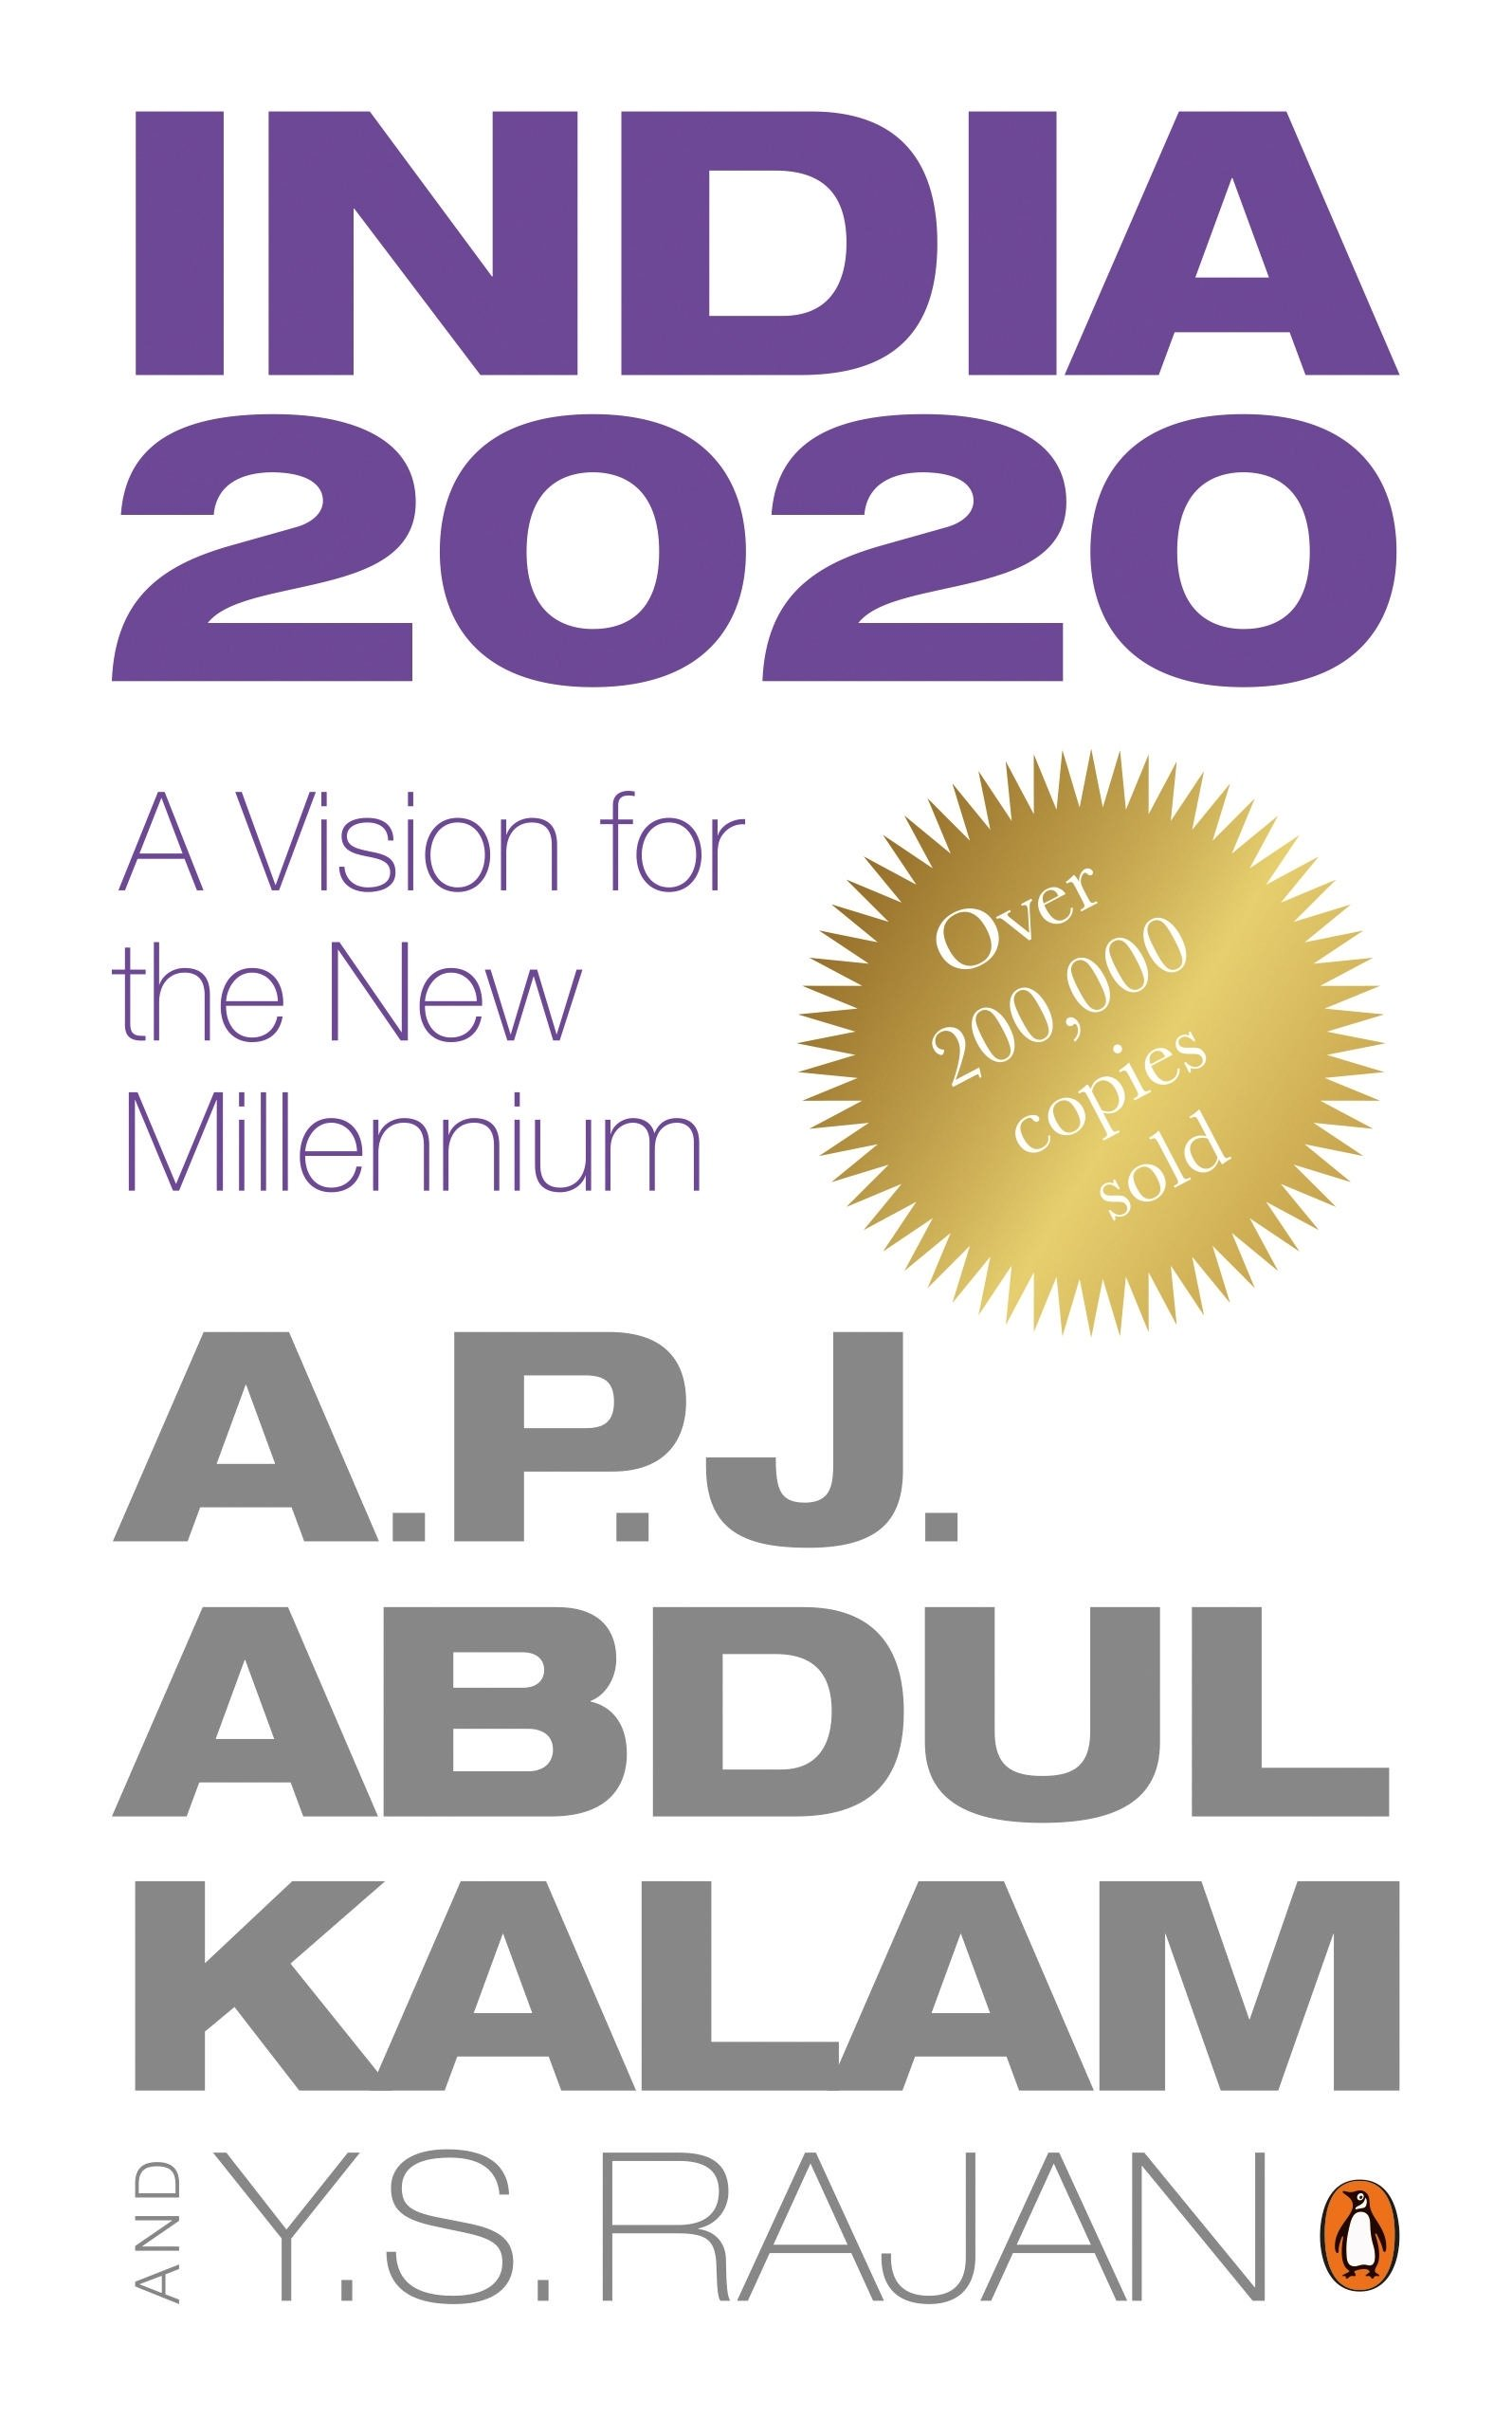 India 2020 a vision for the new millennium apj abdul kalam india 2020 a vision for the new millennium apj abdul kalam ys rajan 9780143423683 amazon books malvernweather Choice Image